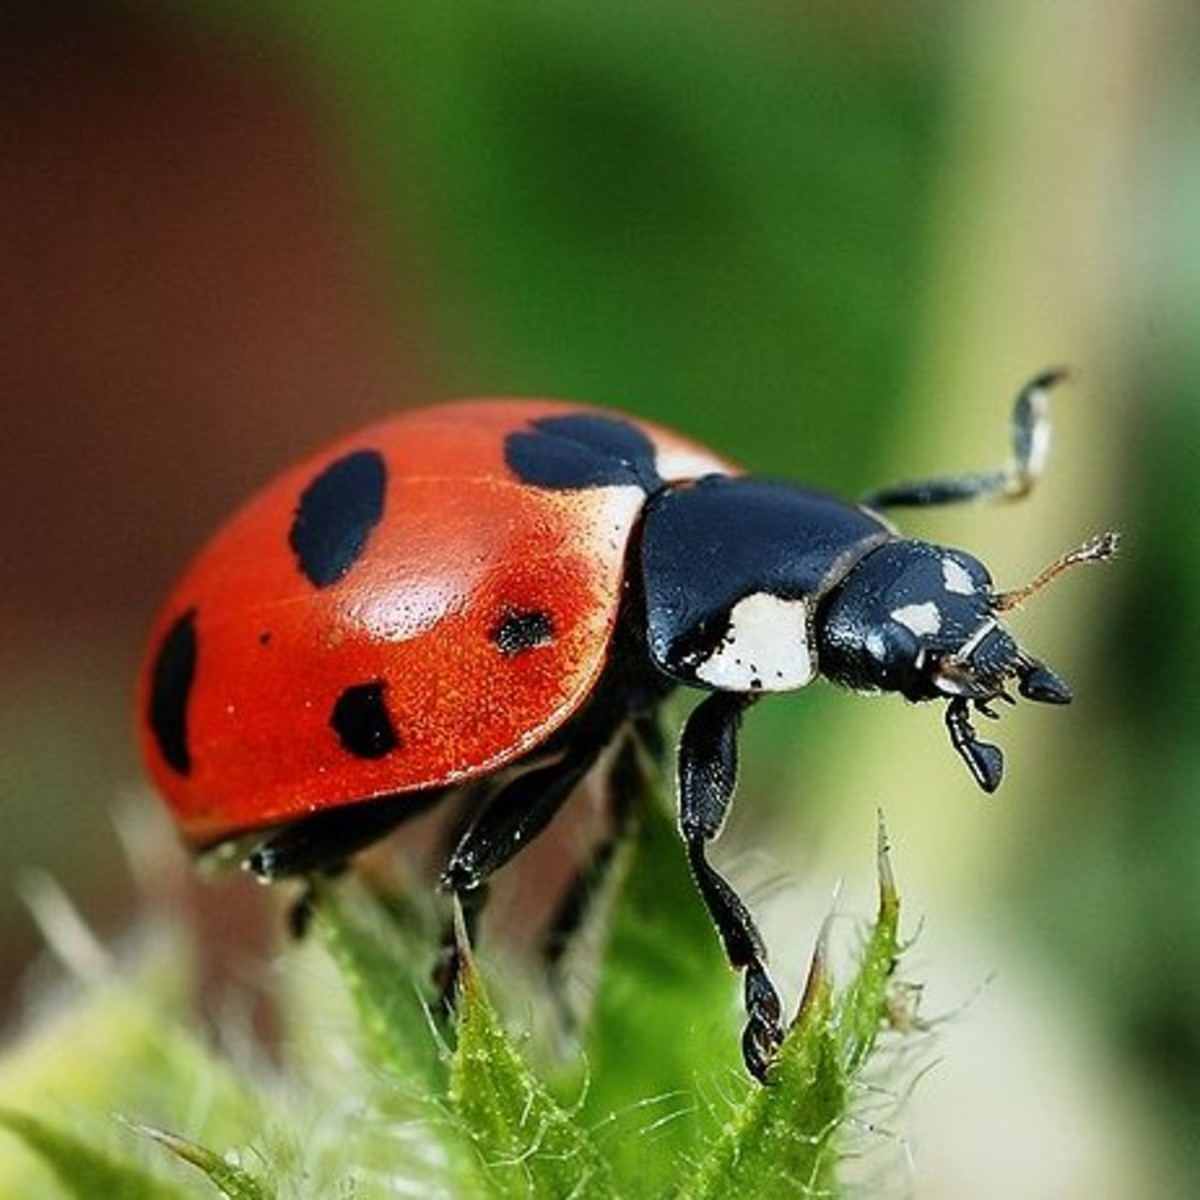 Beneficial Bugs: Ladbugs